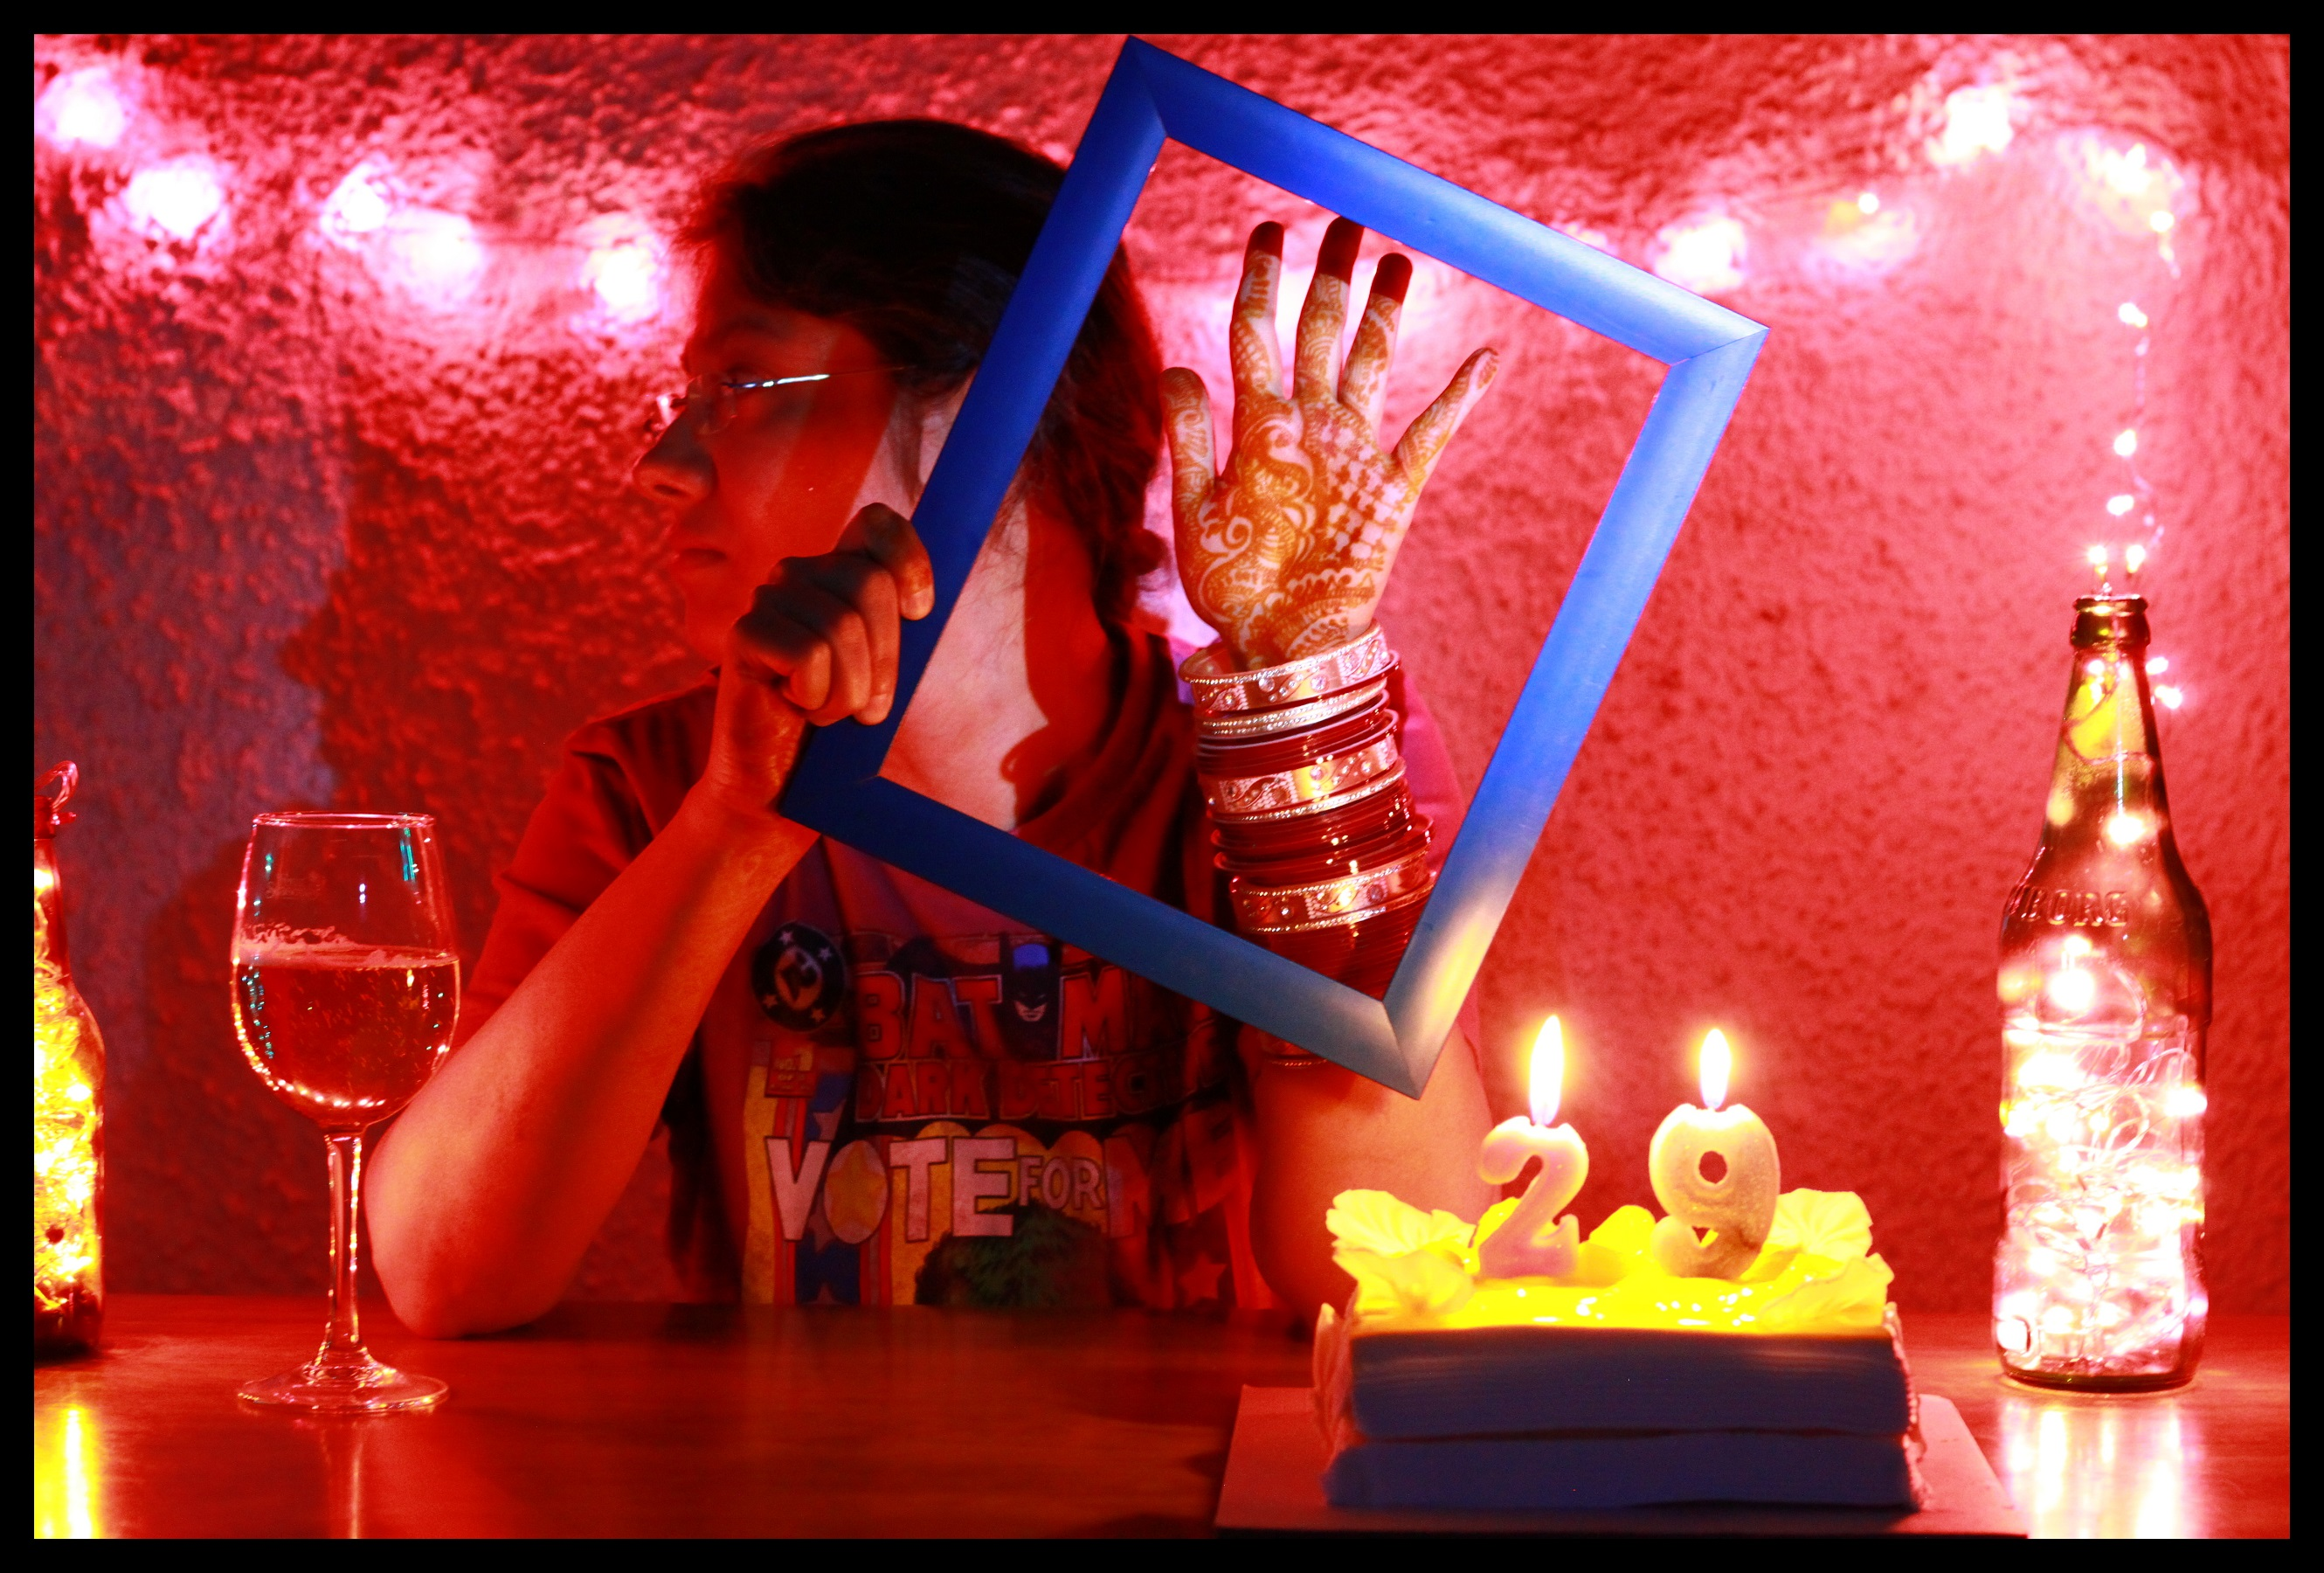 A person with dark hair and glasses holds up a blue picture frame to display the mehendi on their hand and the chura on their wrist. A birthday cake with the number 29 is to the right, and a wine glass is to the left. The person's head is turned to the side; the backdrop is a red wall.